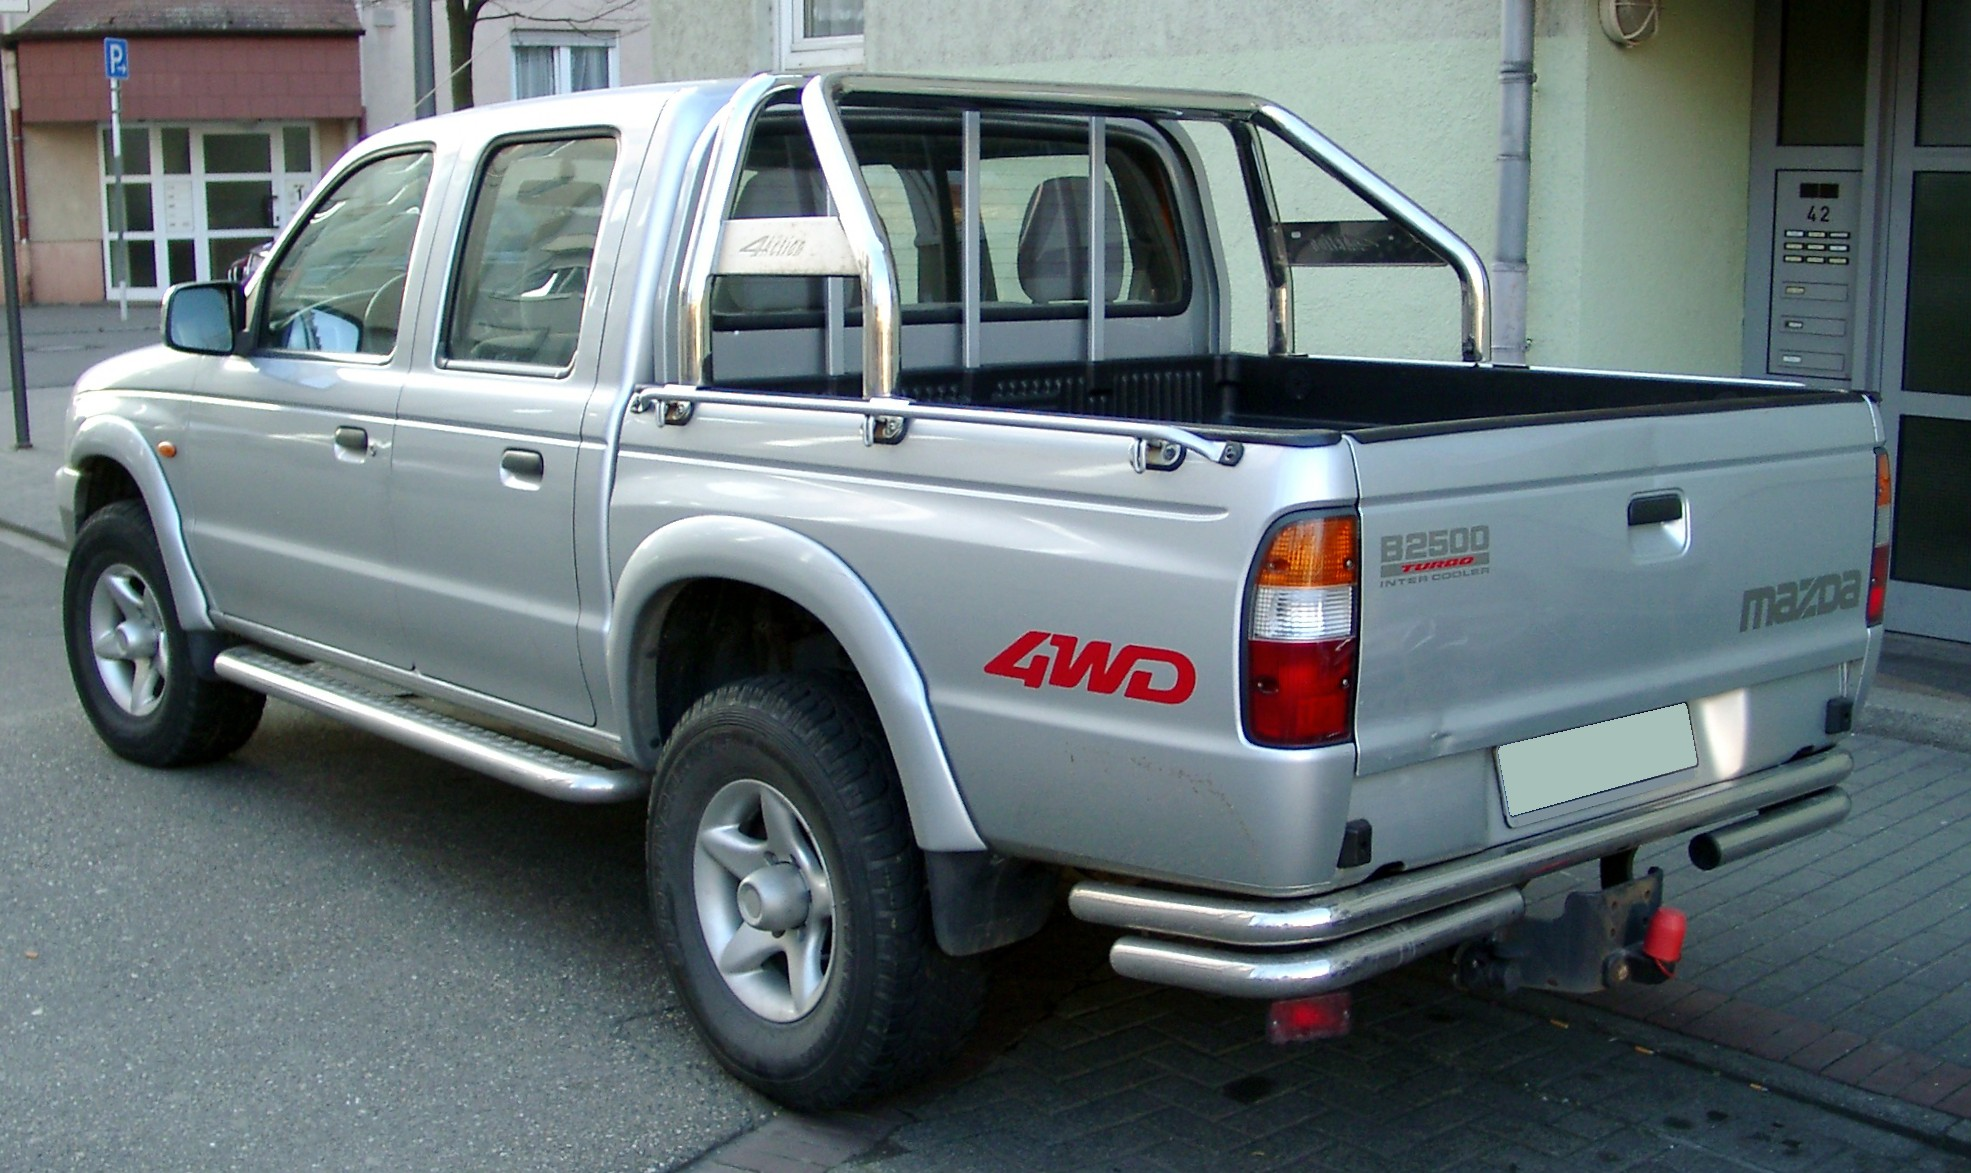 File:Mazda B2500 rear 20080215.jpg - Wikipedia, the free encyclopedia